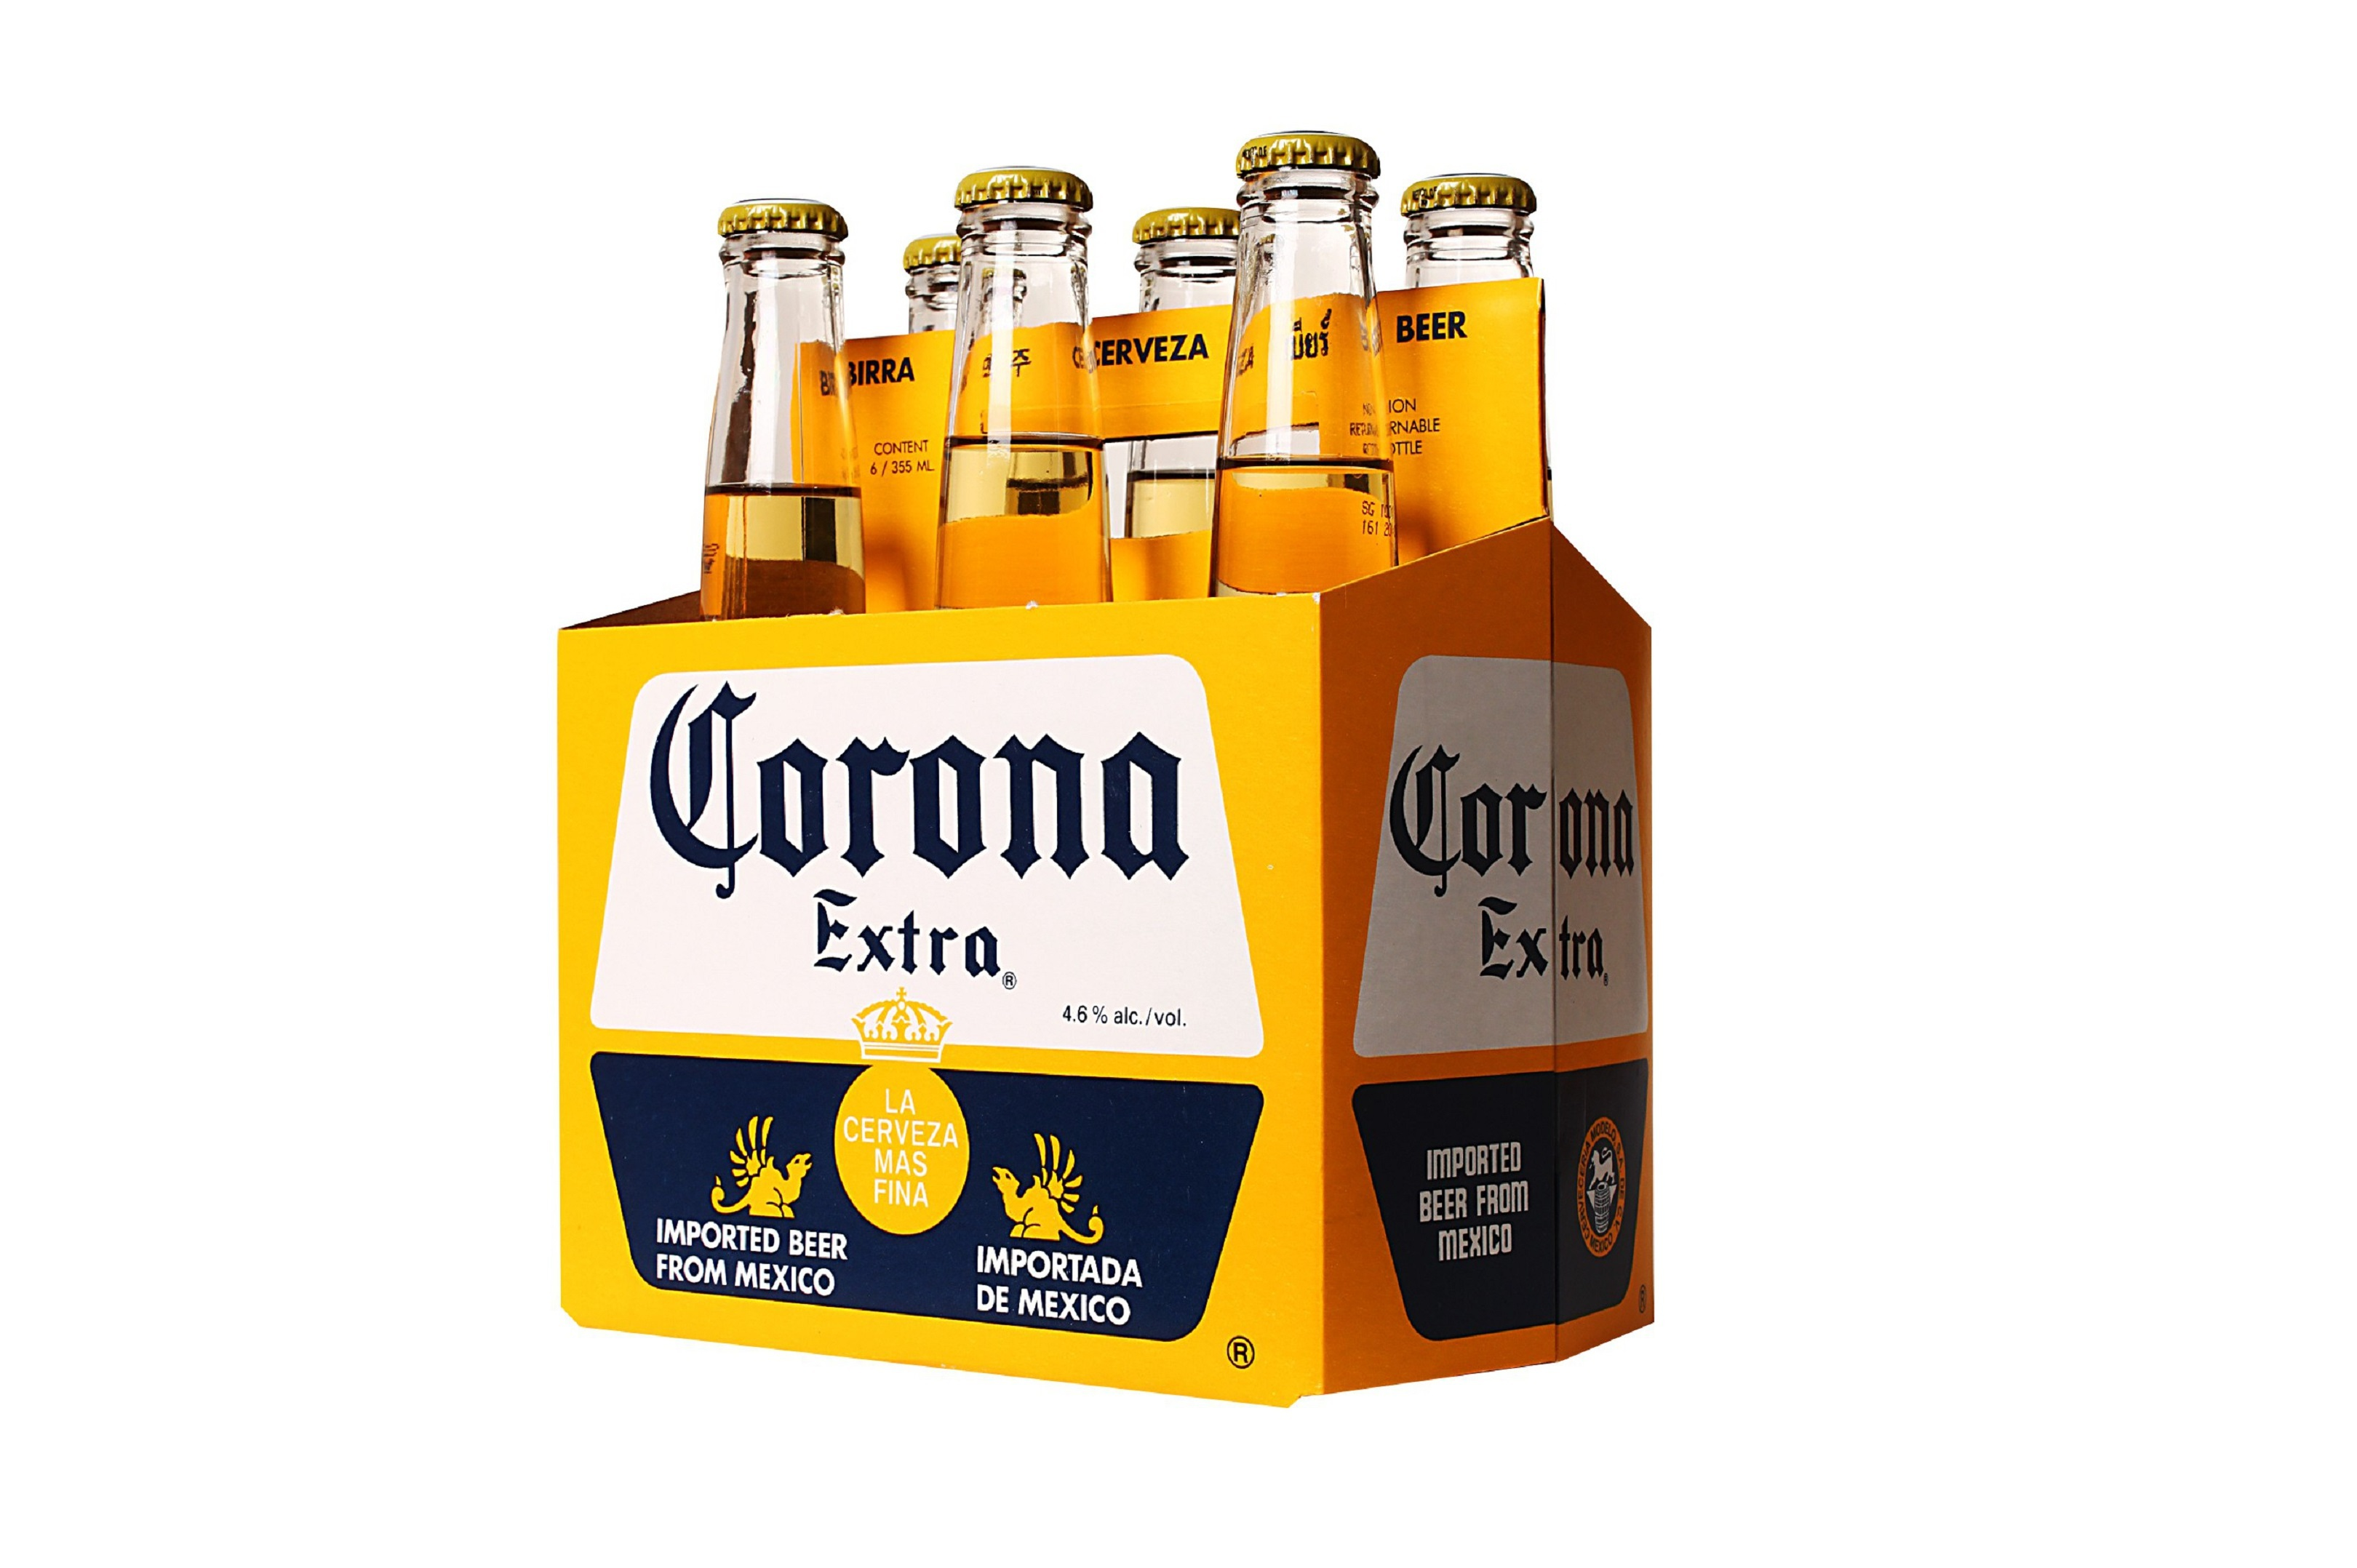 Corona Wallpapers Images Photos Pictures Backgrounds